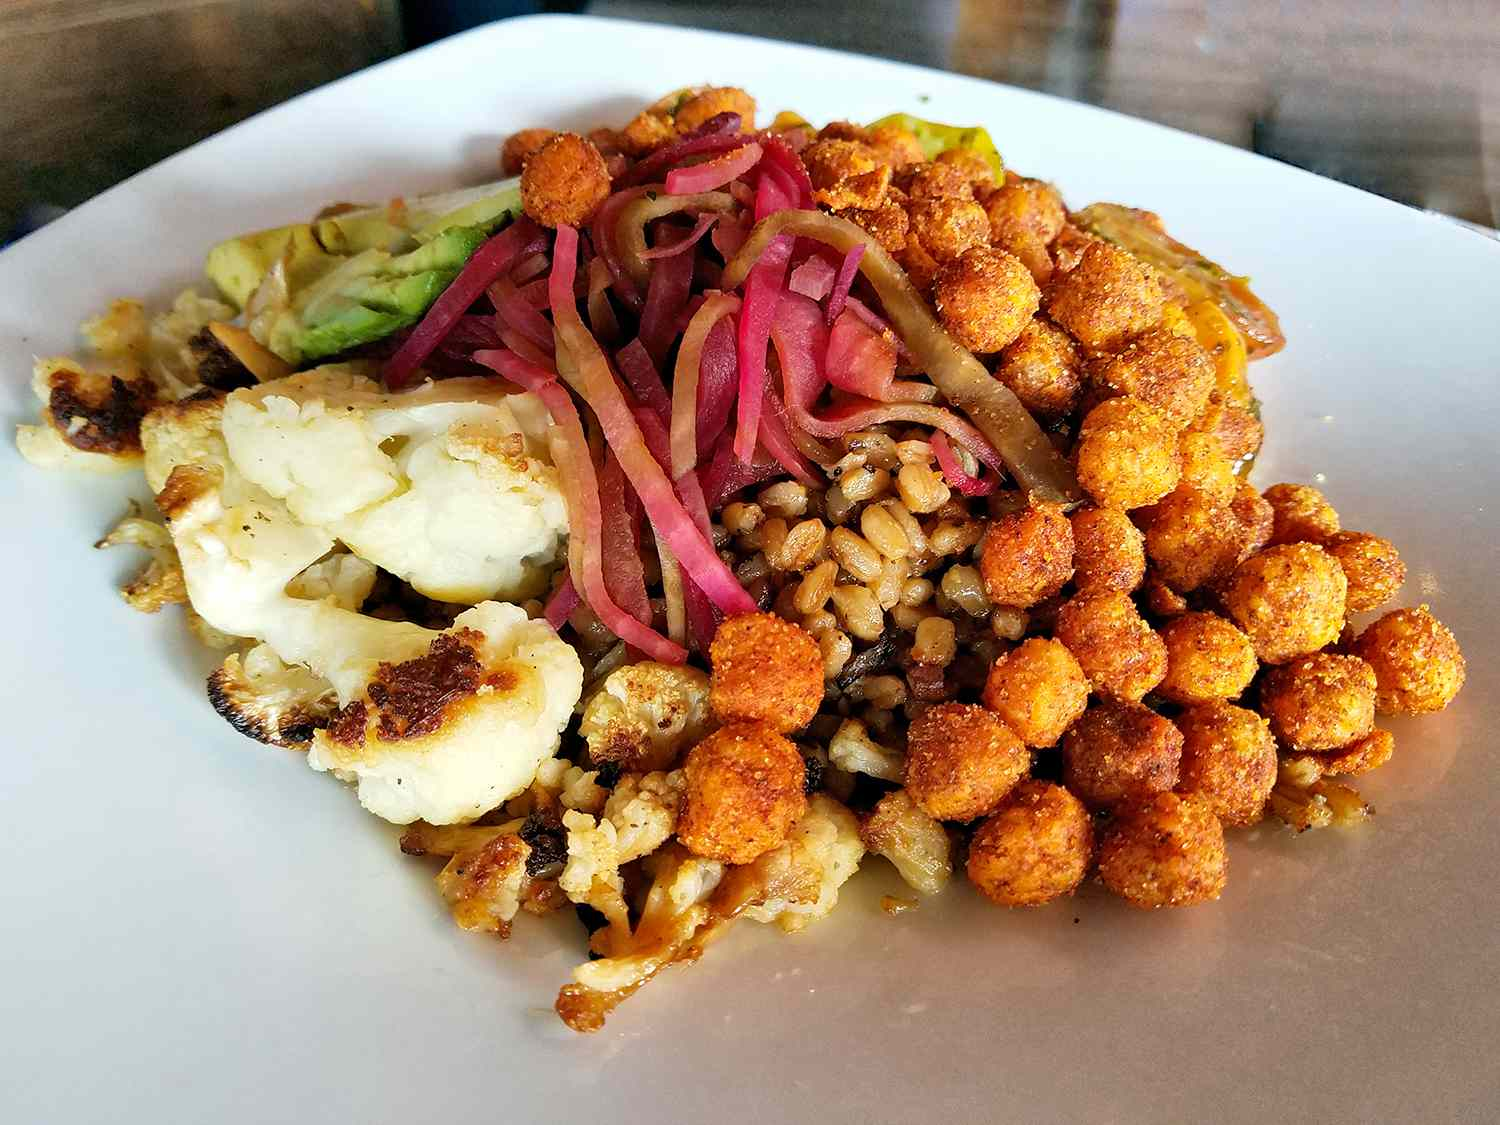 Farro bowl with cauliflower, fried chick peas, and beets